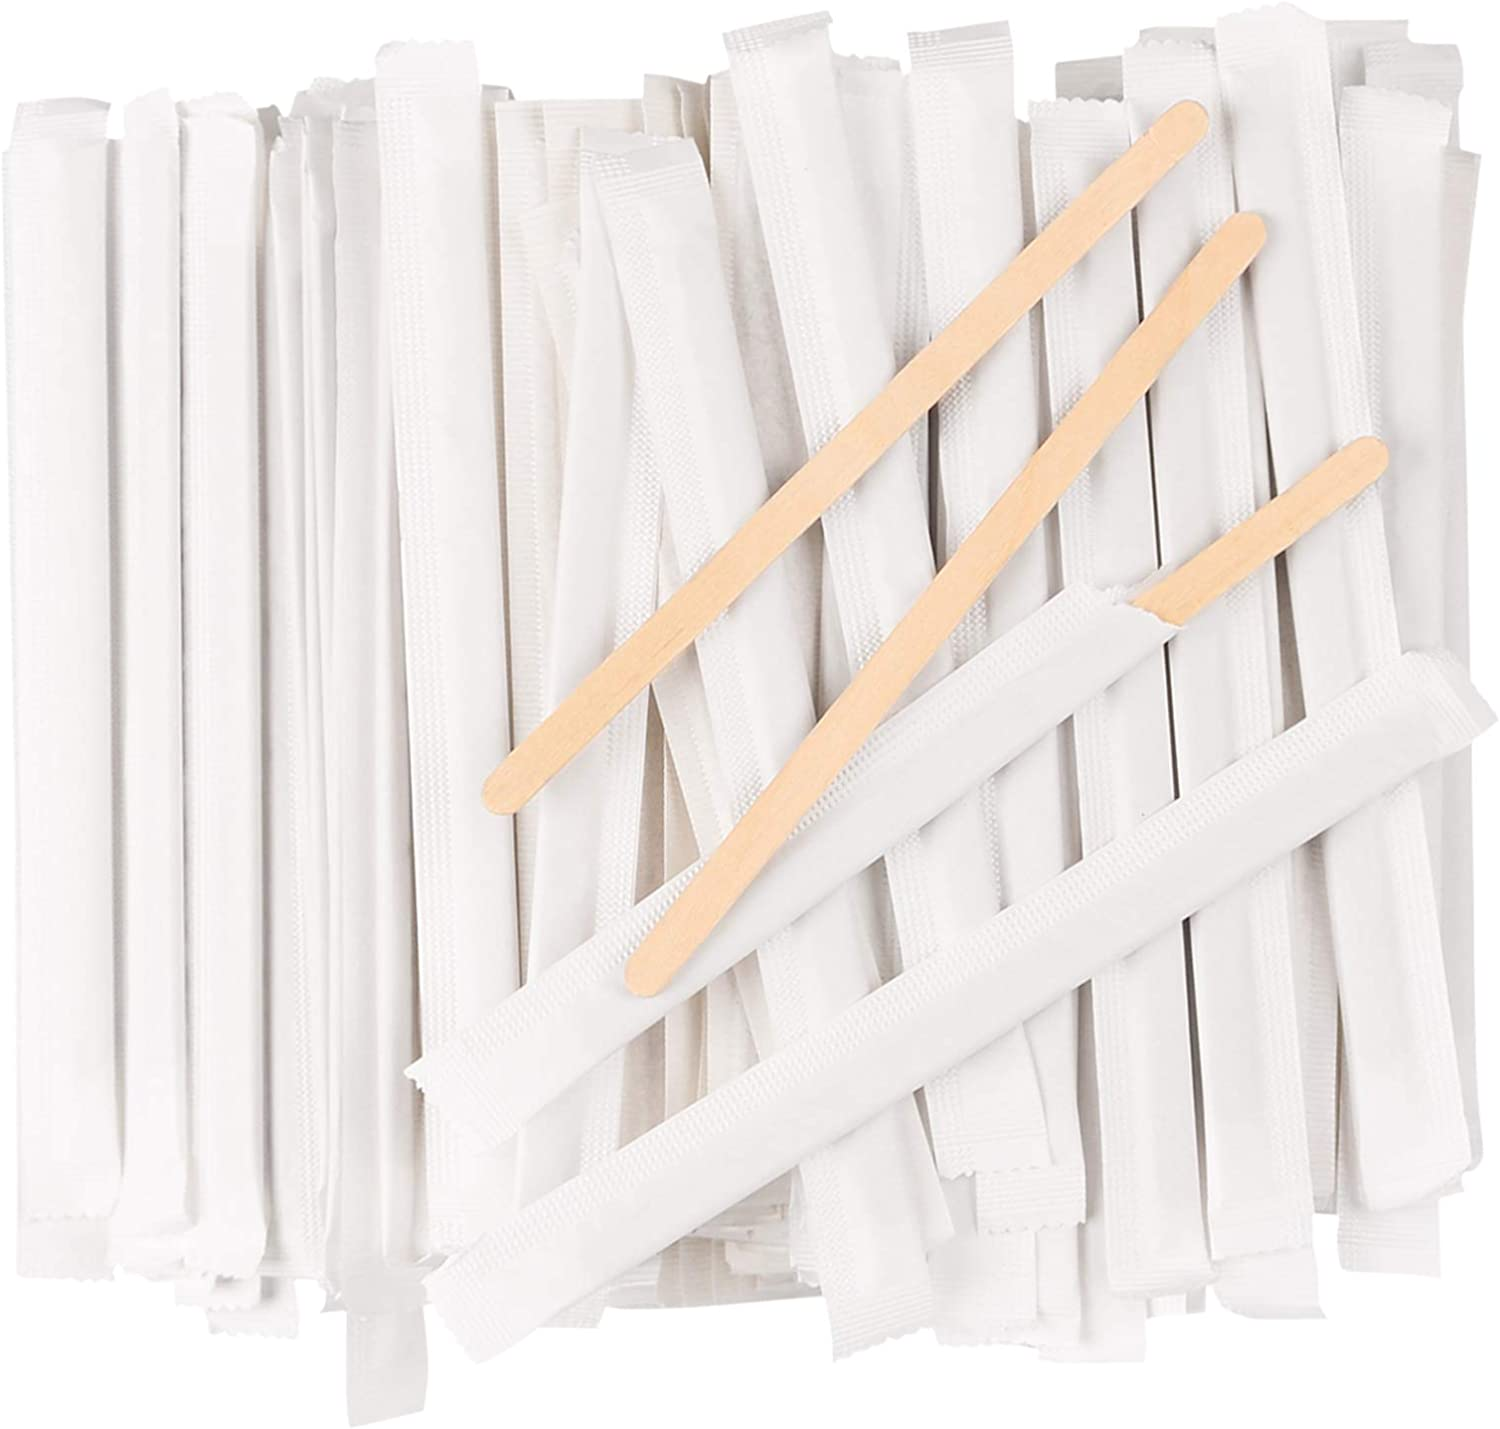 Disposable Wood Paper 5.5 Inch 1000 Pcs Wrapped Coffee Stirrers, Individually Wrapped Coffee Stirrers, Wrapped Stir Sticks Coffee Sticks for Coffee, Tea, and Craft Projects